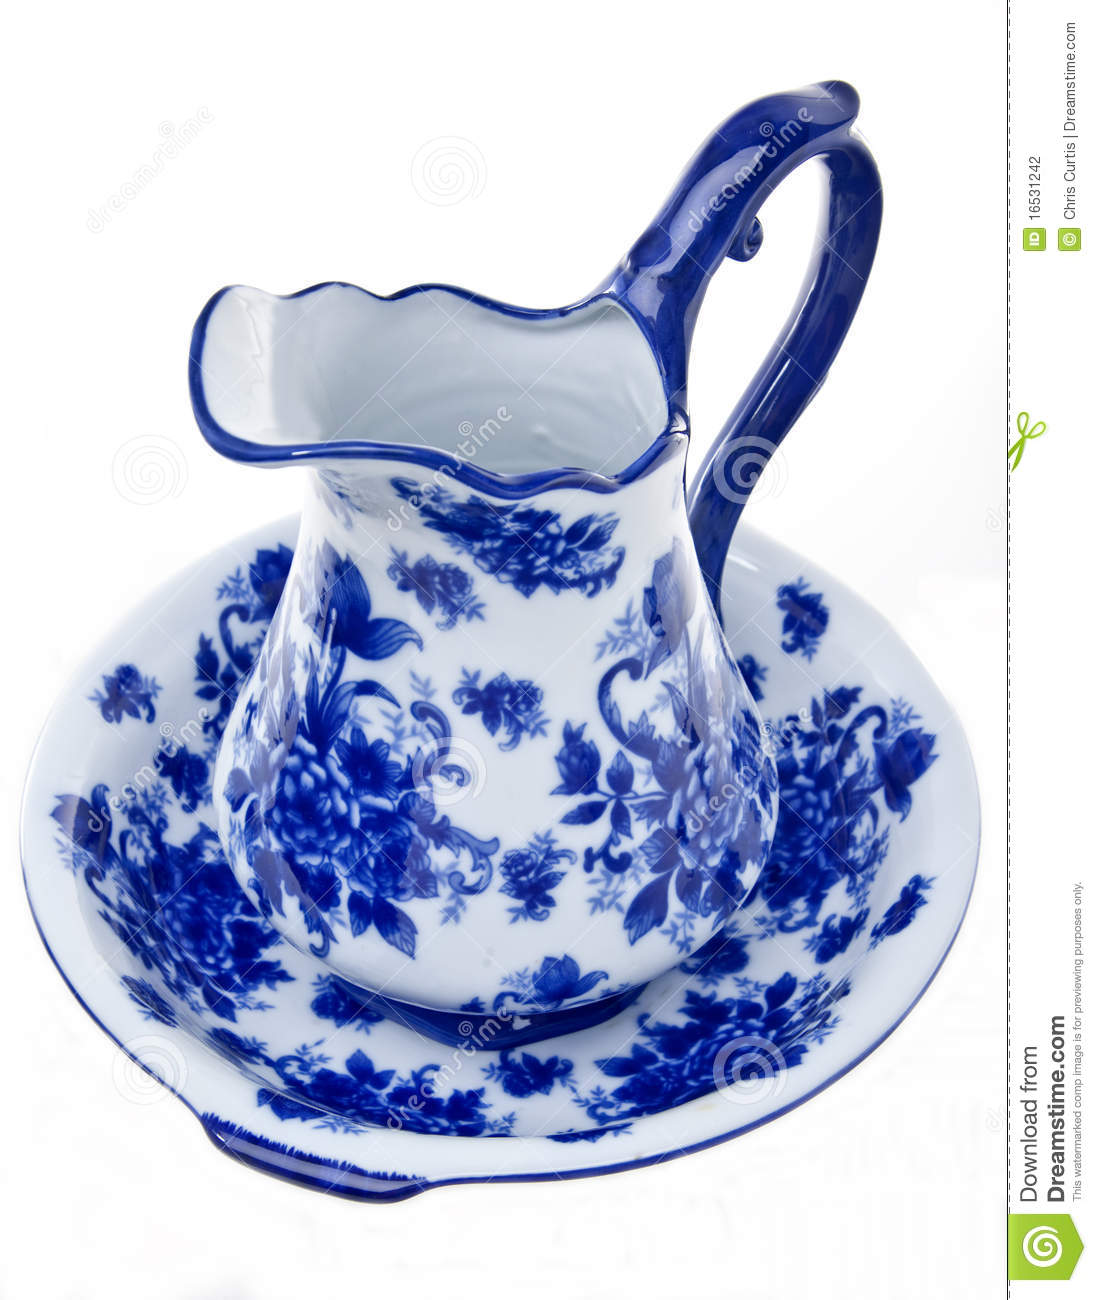 Blue and white pottery - Blue And White Pottery Pitcher And Basin